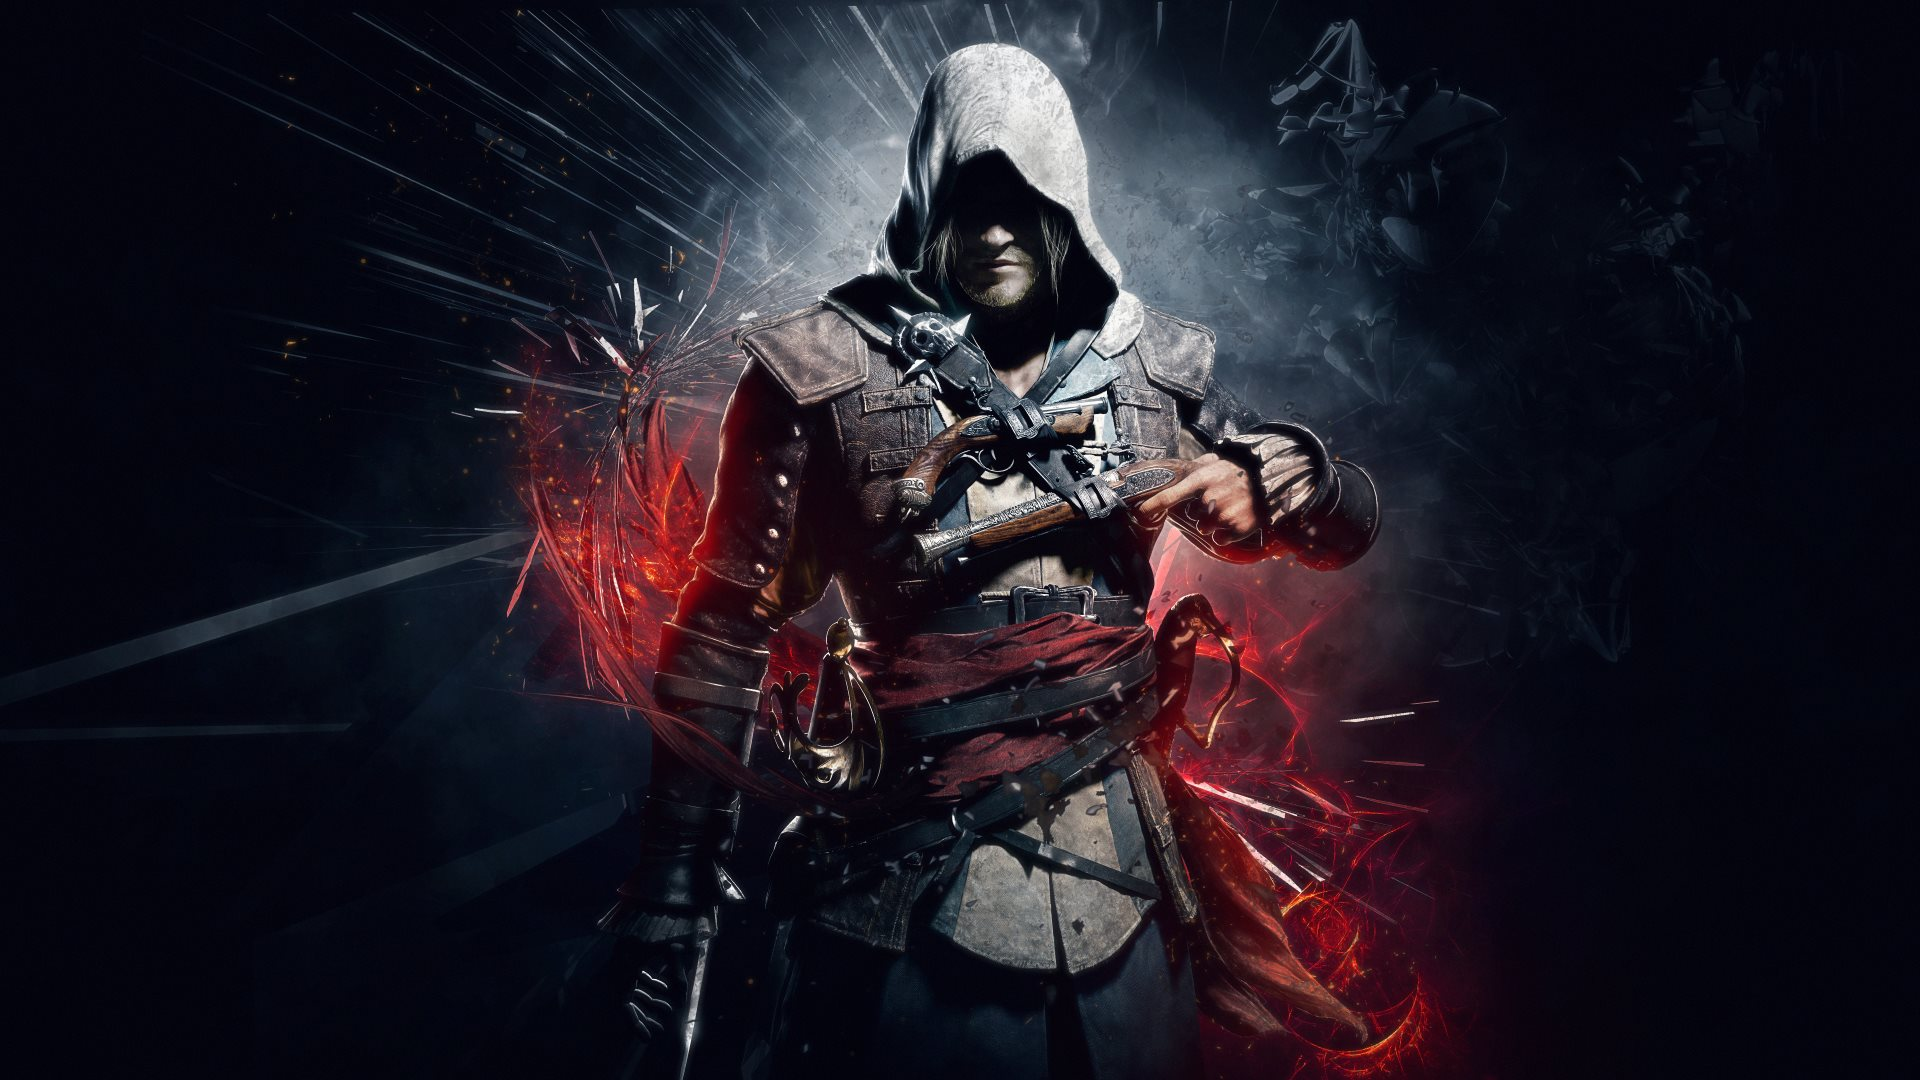 Assassin-s-Creed-IV-Black-Flag-HD-1920X1080-Need-iPhone-S-Plus-Background-for-IPh-wallpaper-wp3602758